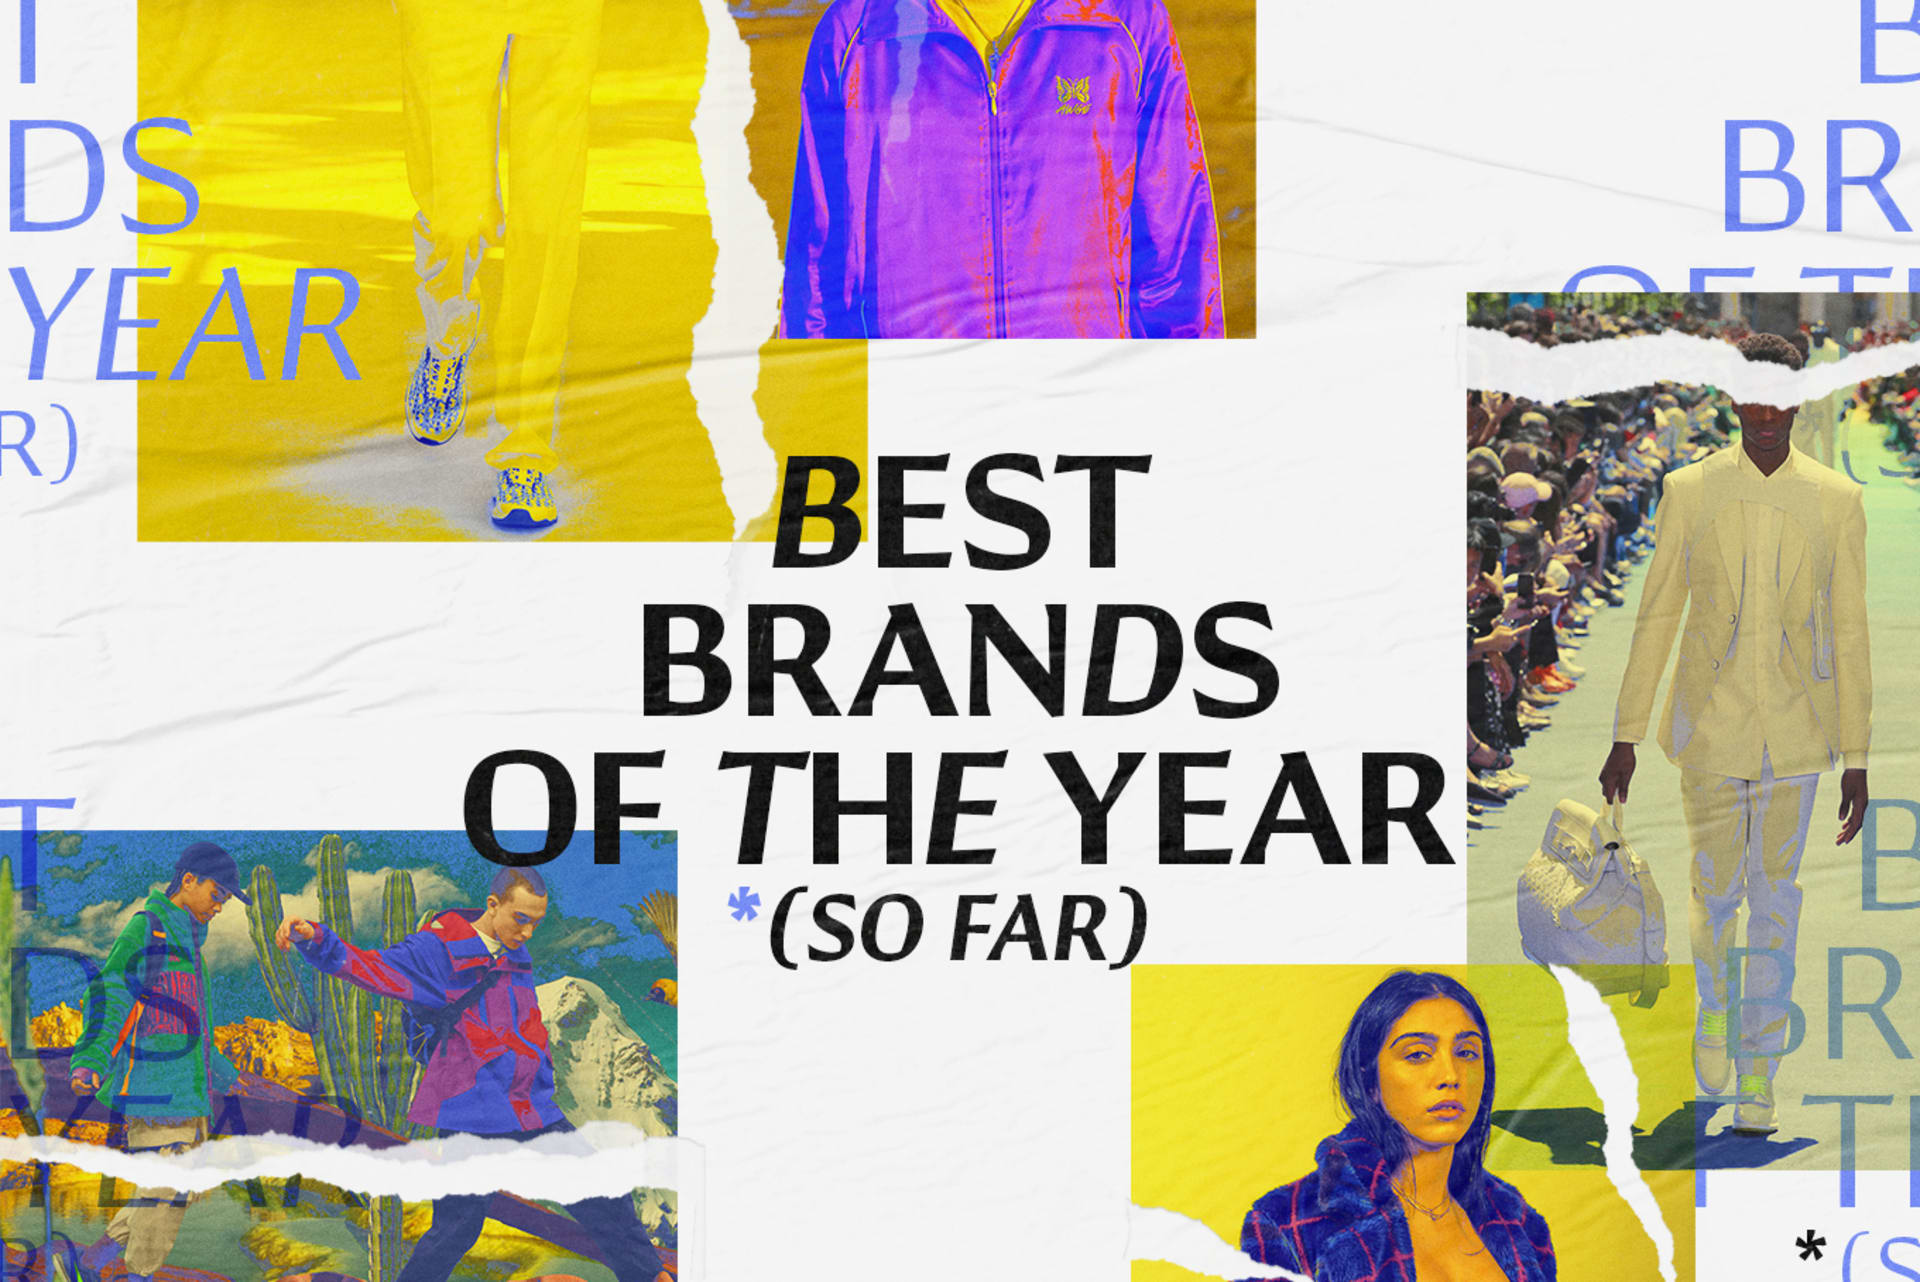 Best Fashion Brands of 2019 (So Far): Brands of the Year